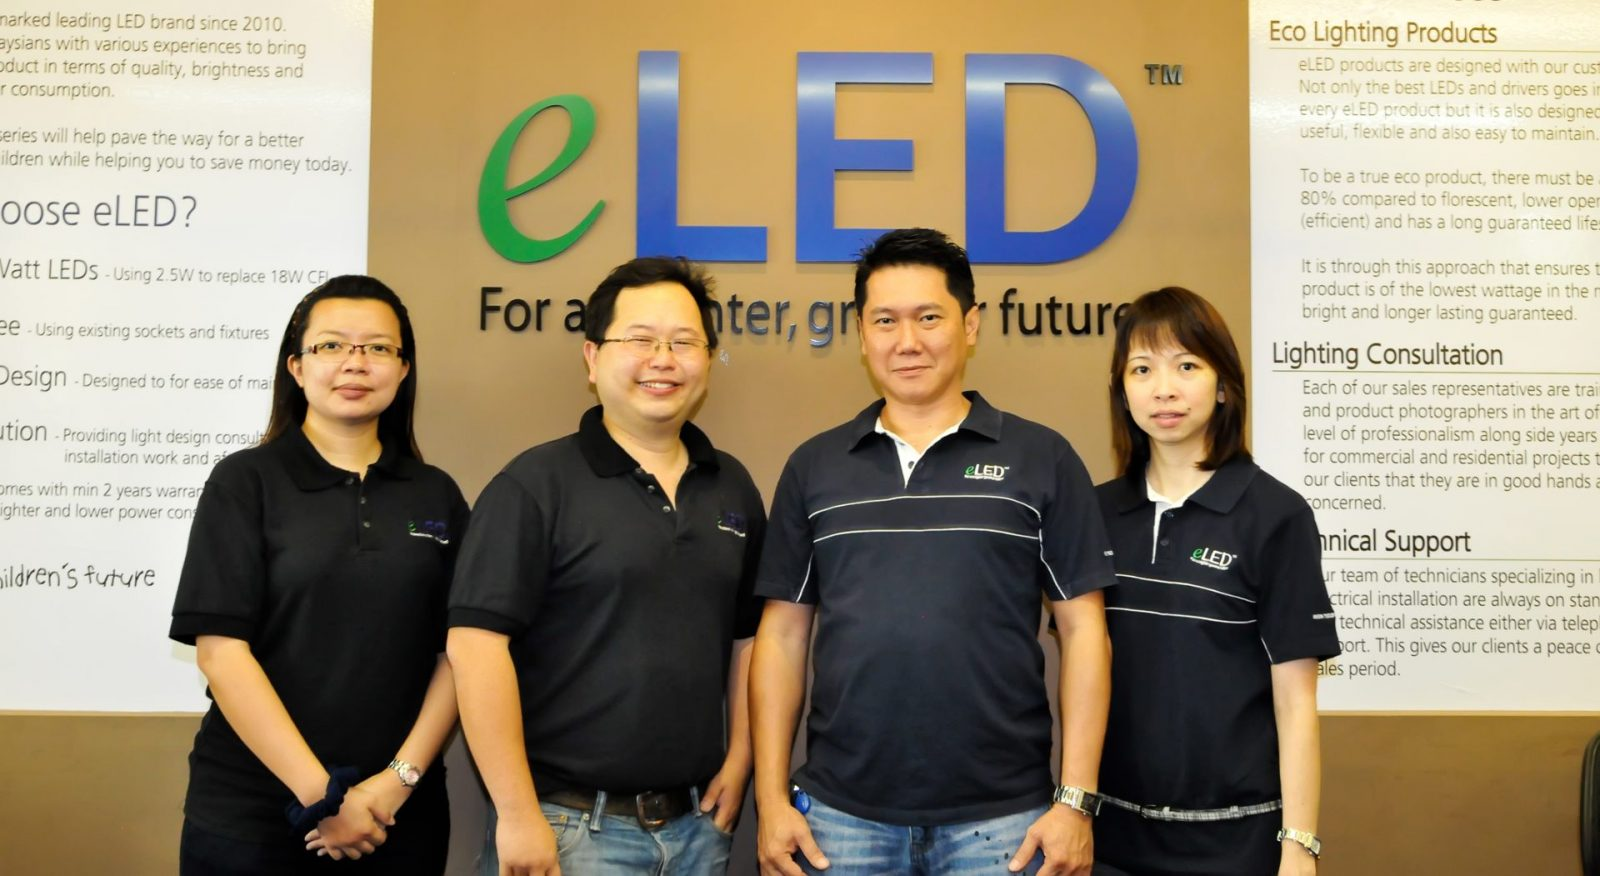 How One Malaysian Company is Using the Lightbulb to Start a Green Movement